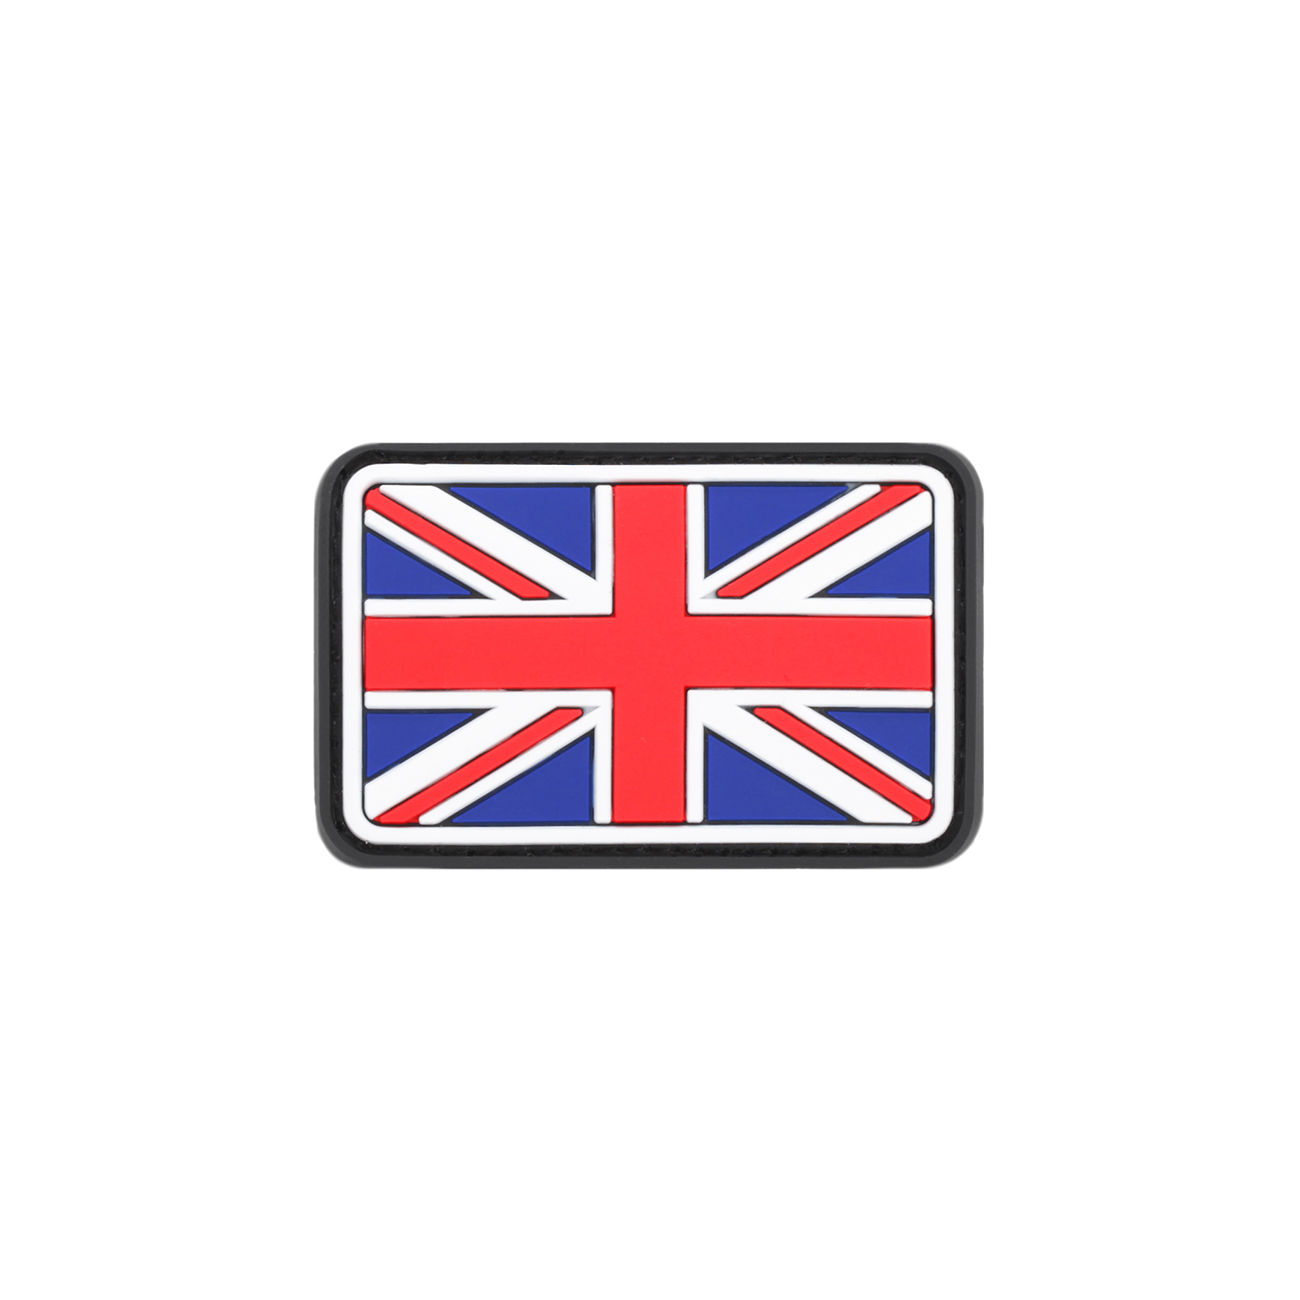 3D Rubber Patch United Kingdom vollfarbig 0